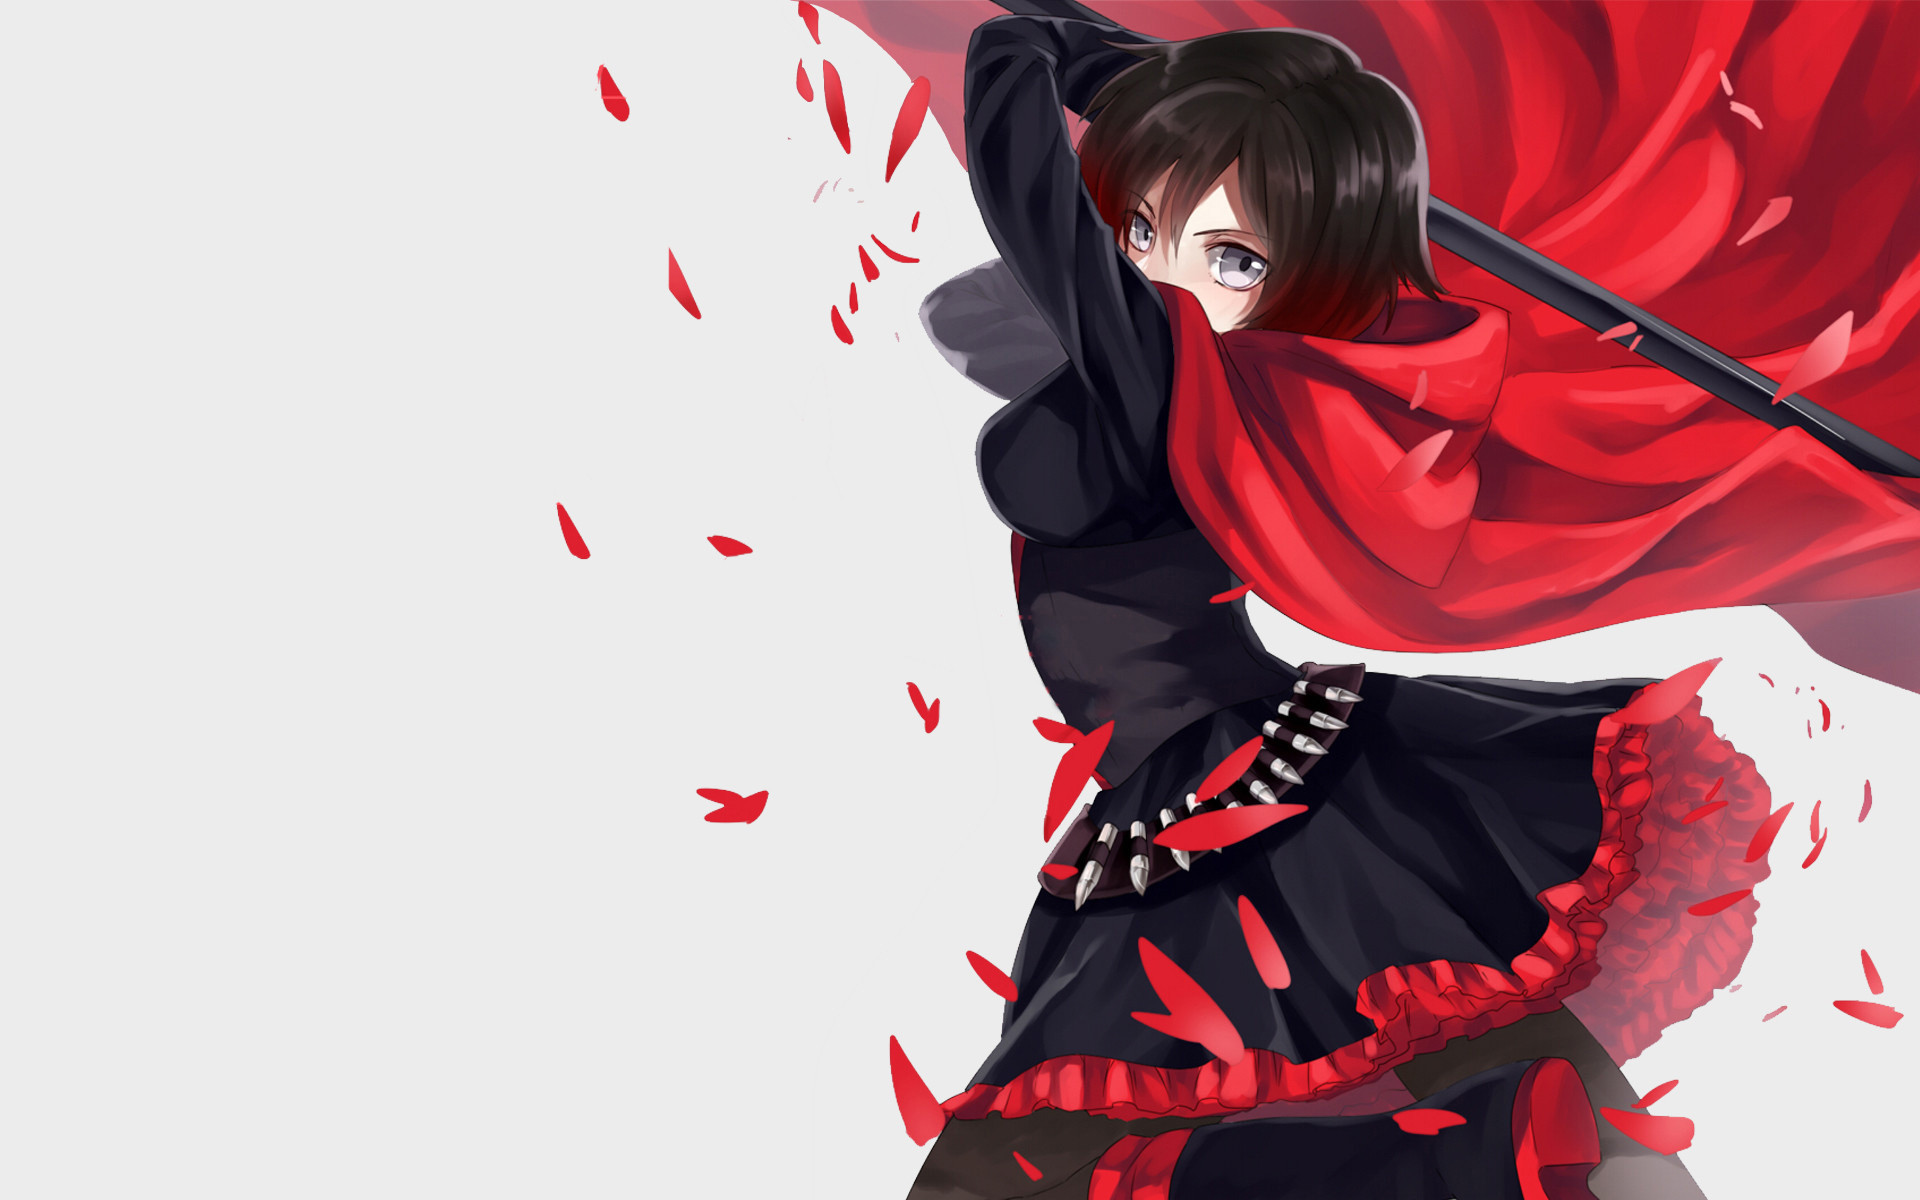 … Anime Wallpapers Anime Girls HD Desktop Backgrounds | Page 4